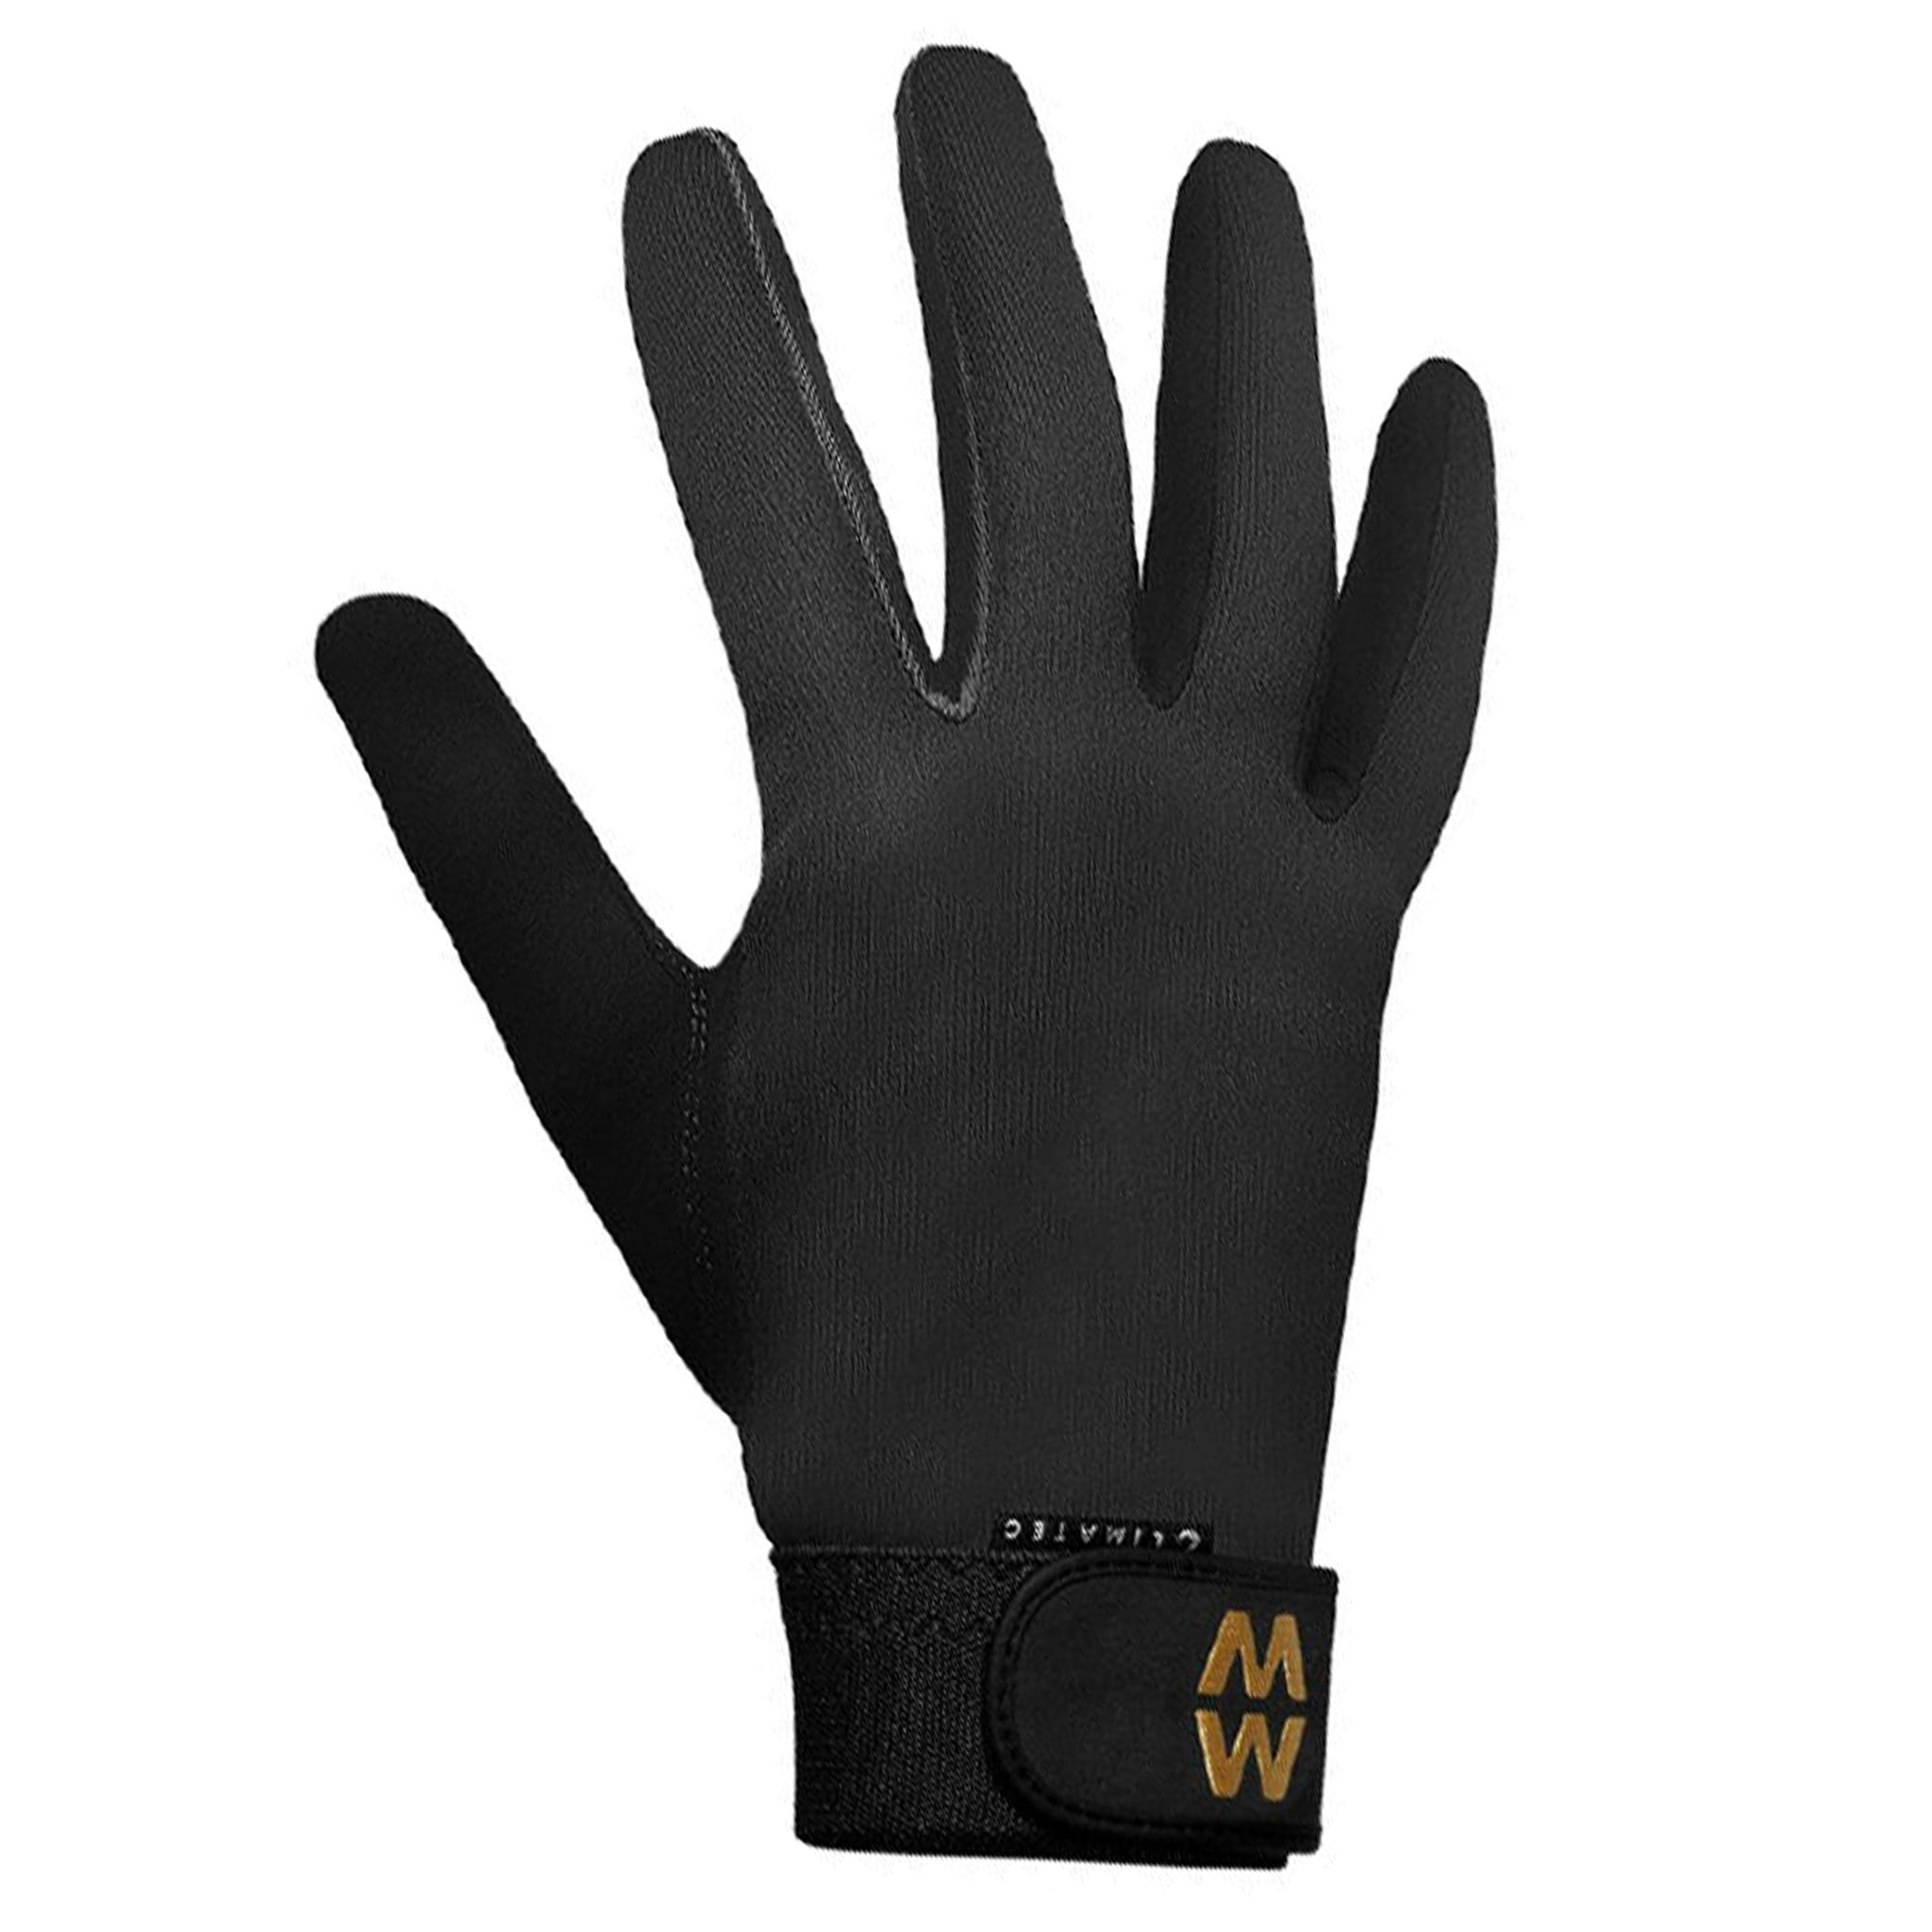 MacWet Climatec Long Cuff Gloves Black 2717.